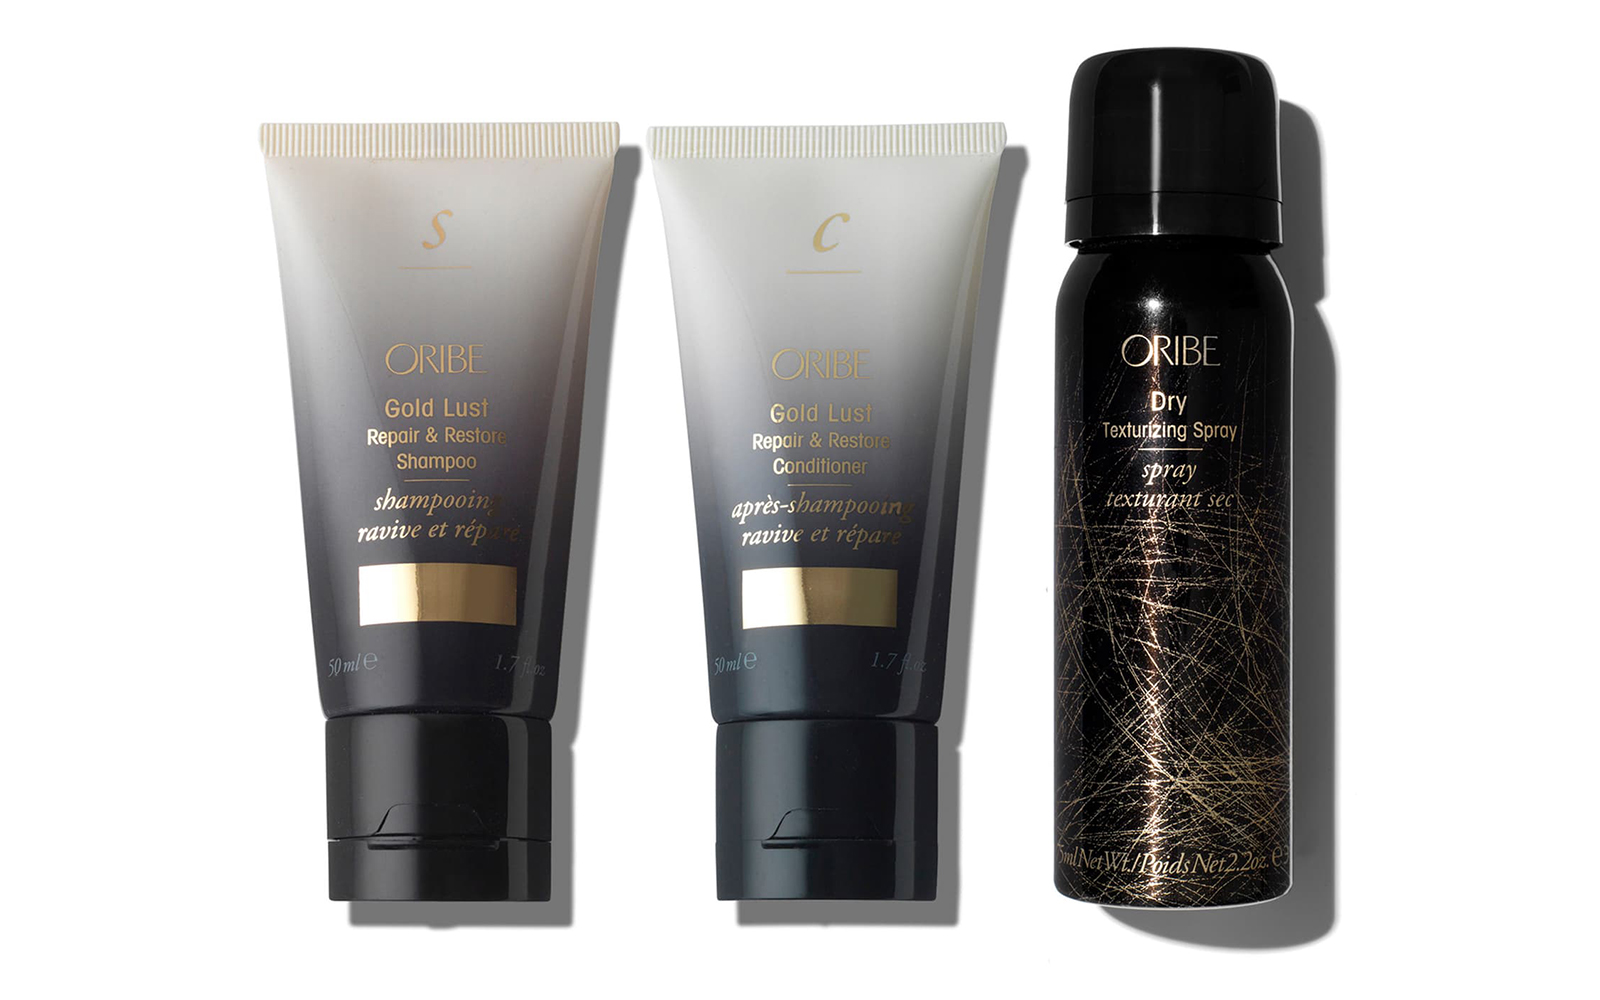 SPACE.NK.apothecary Oribe Gold Lust Set